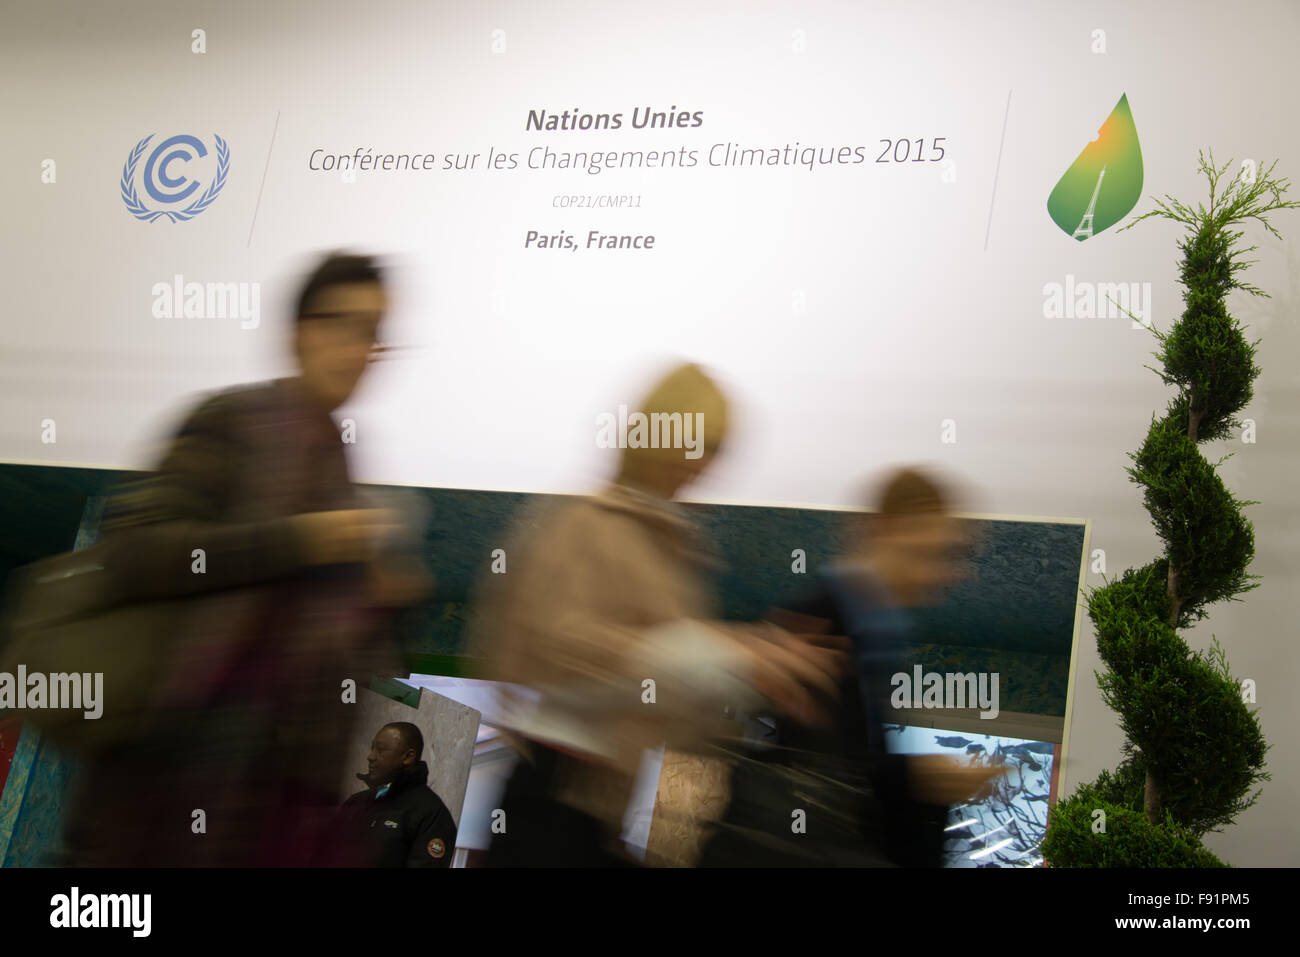 Delegates enter the main hall of the COP21 United Nations climate summit in Paris, France, November 29, 2015. - Stock Image